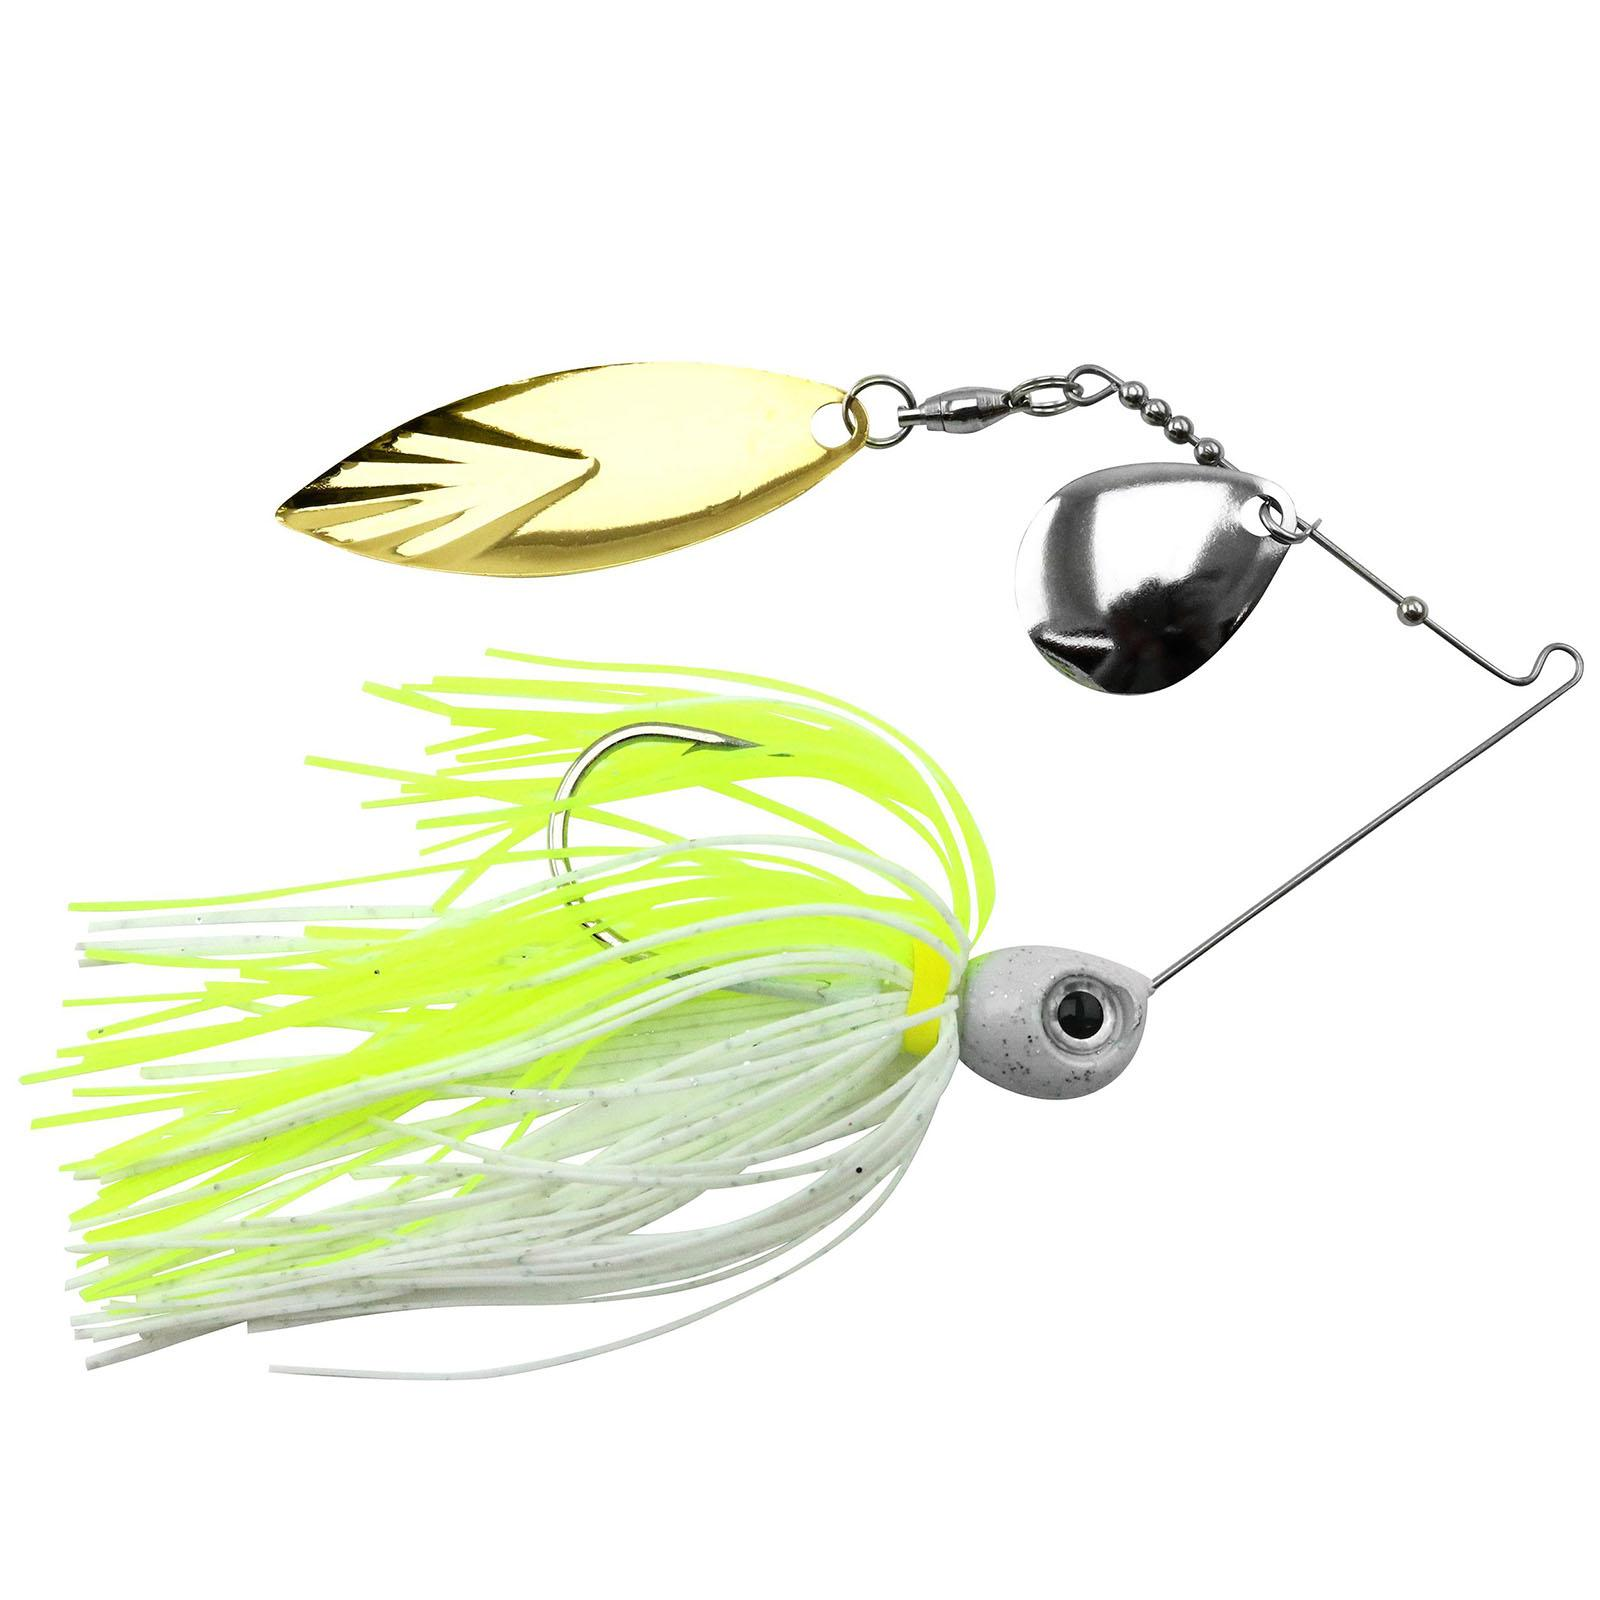 Accent River Special Colorado / Willow Spinnerbait Color Nickel/Gold Blade - Chartreuse/White Skirt Weight 1/4 oz thumbnail